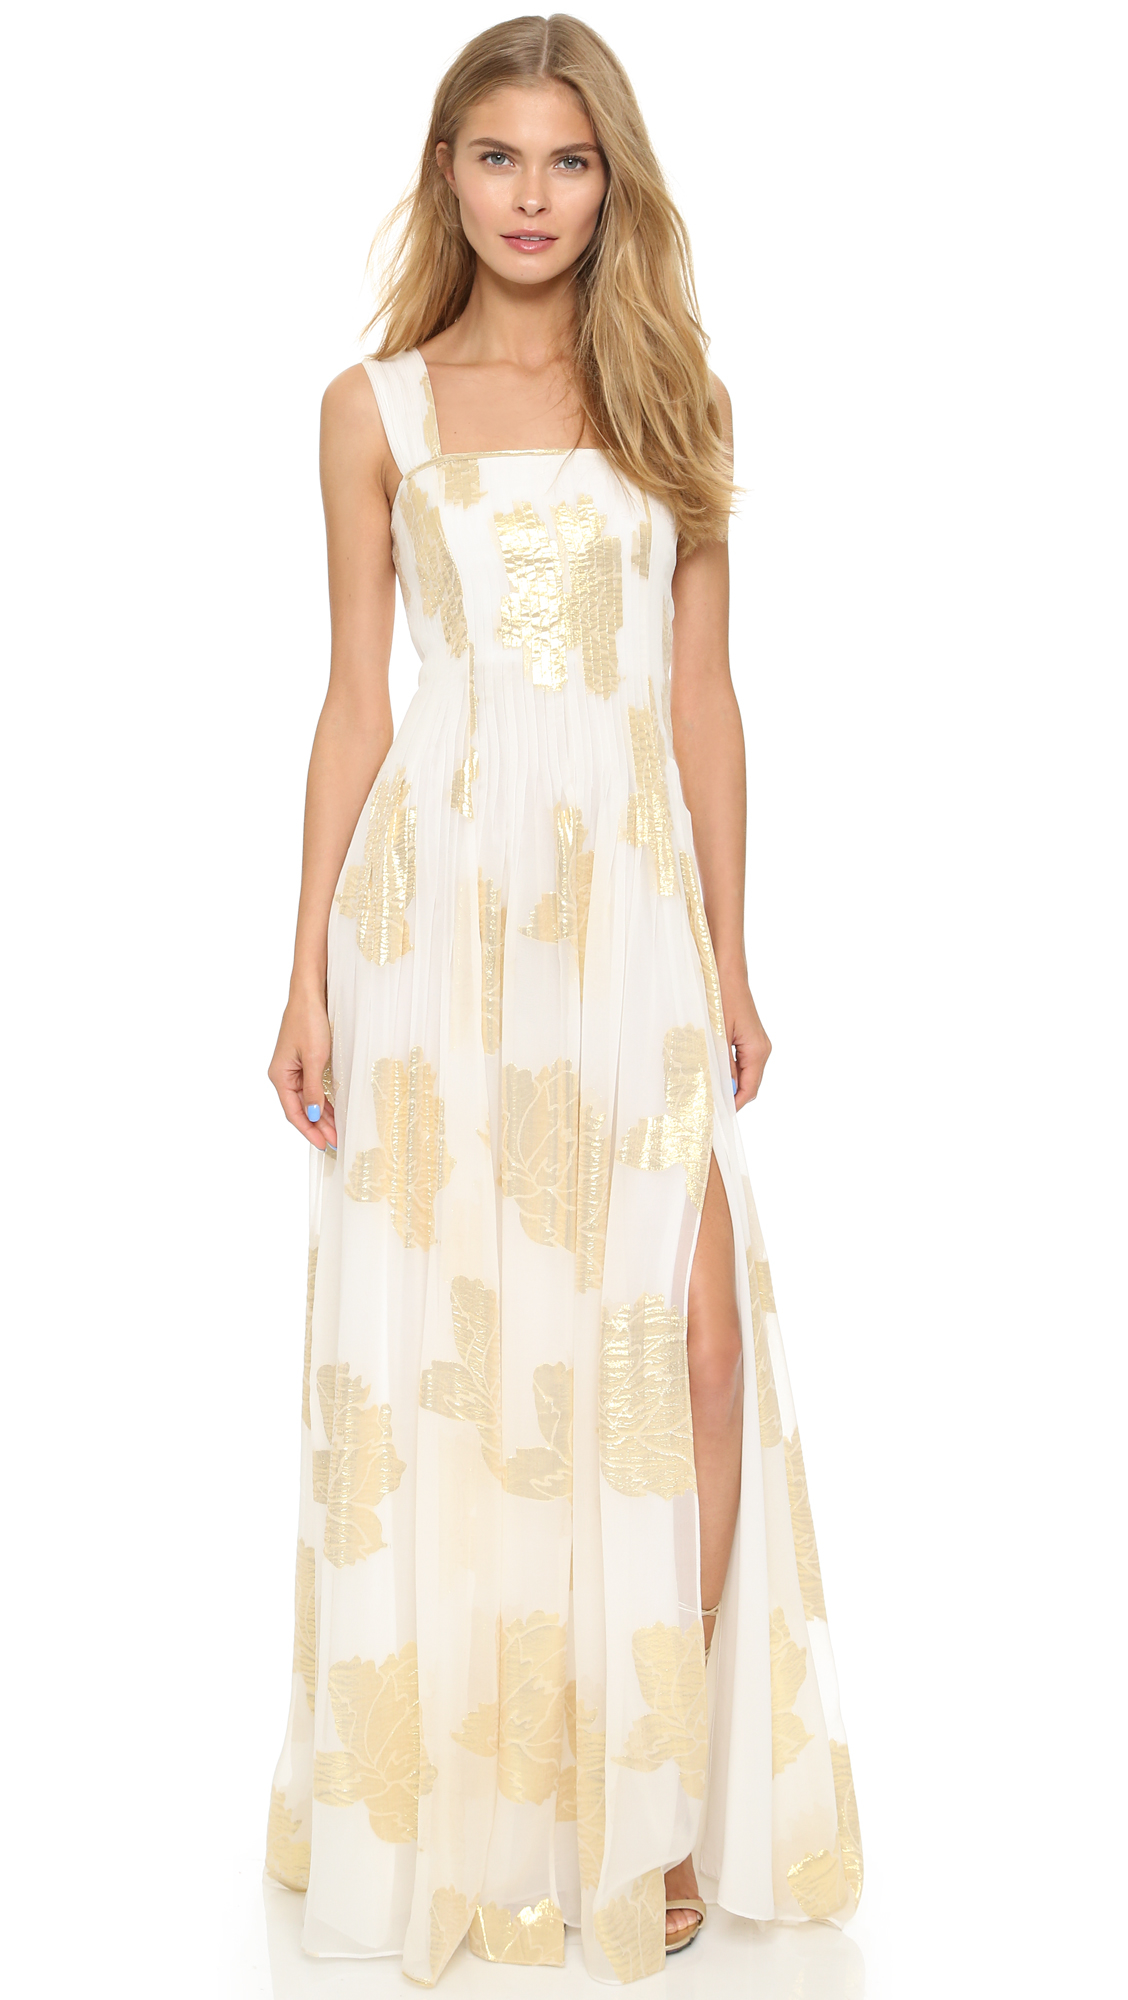 Lyst diane von furstenberg lillie maxi dress ivory for Diane von furstenberg clothes